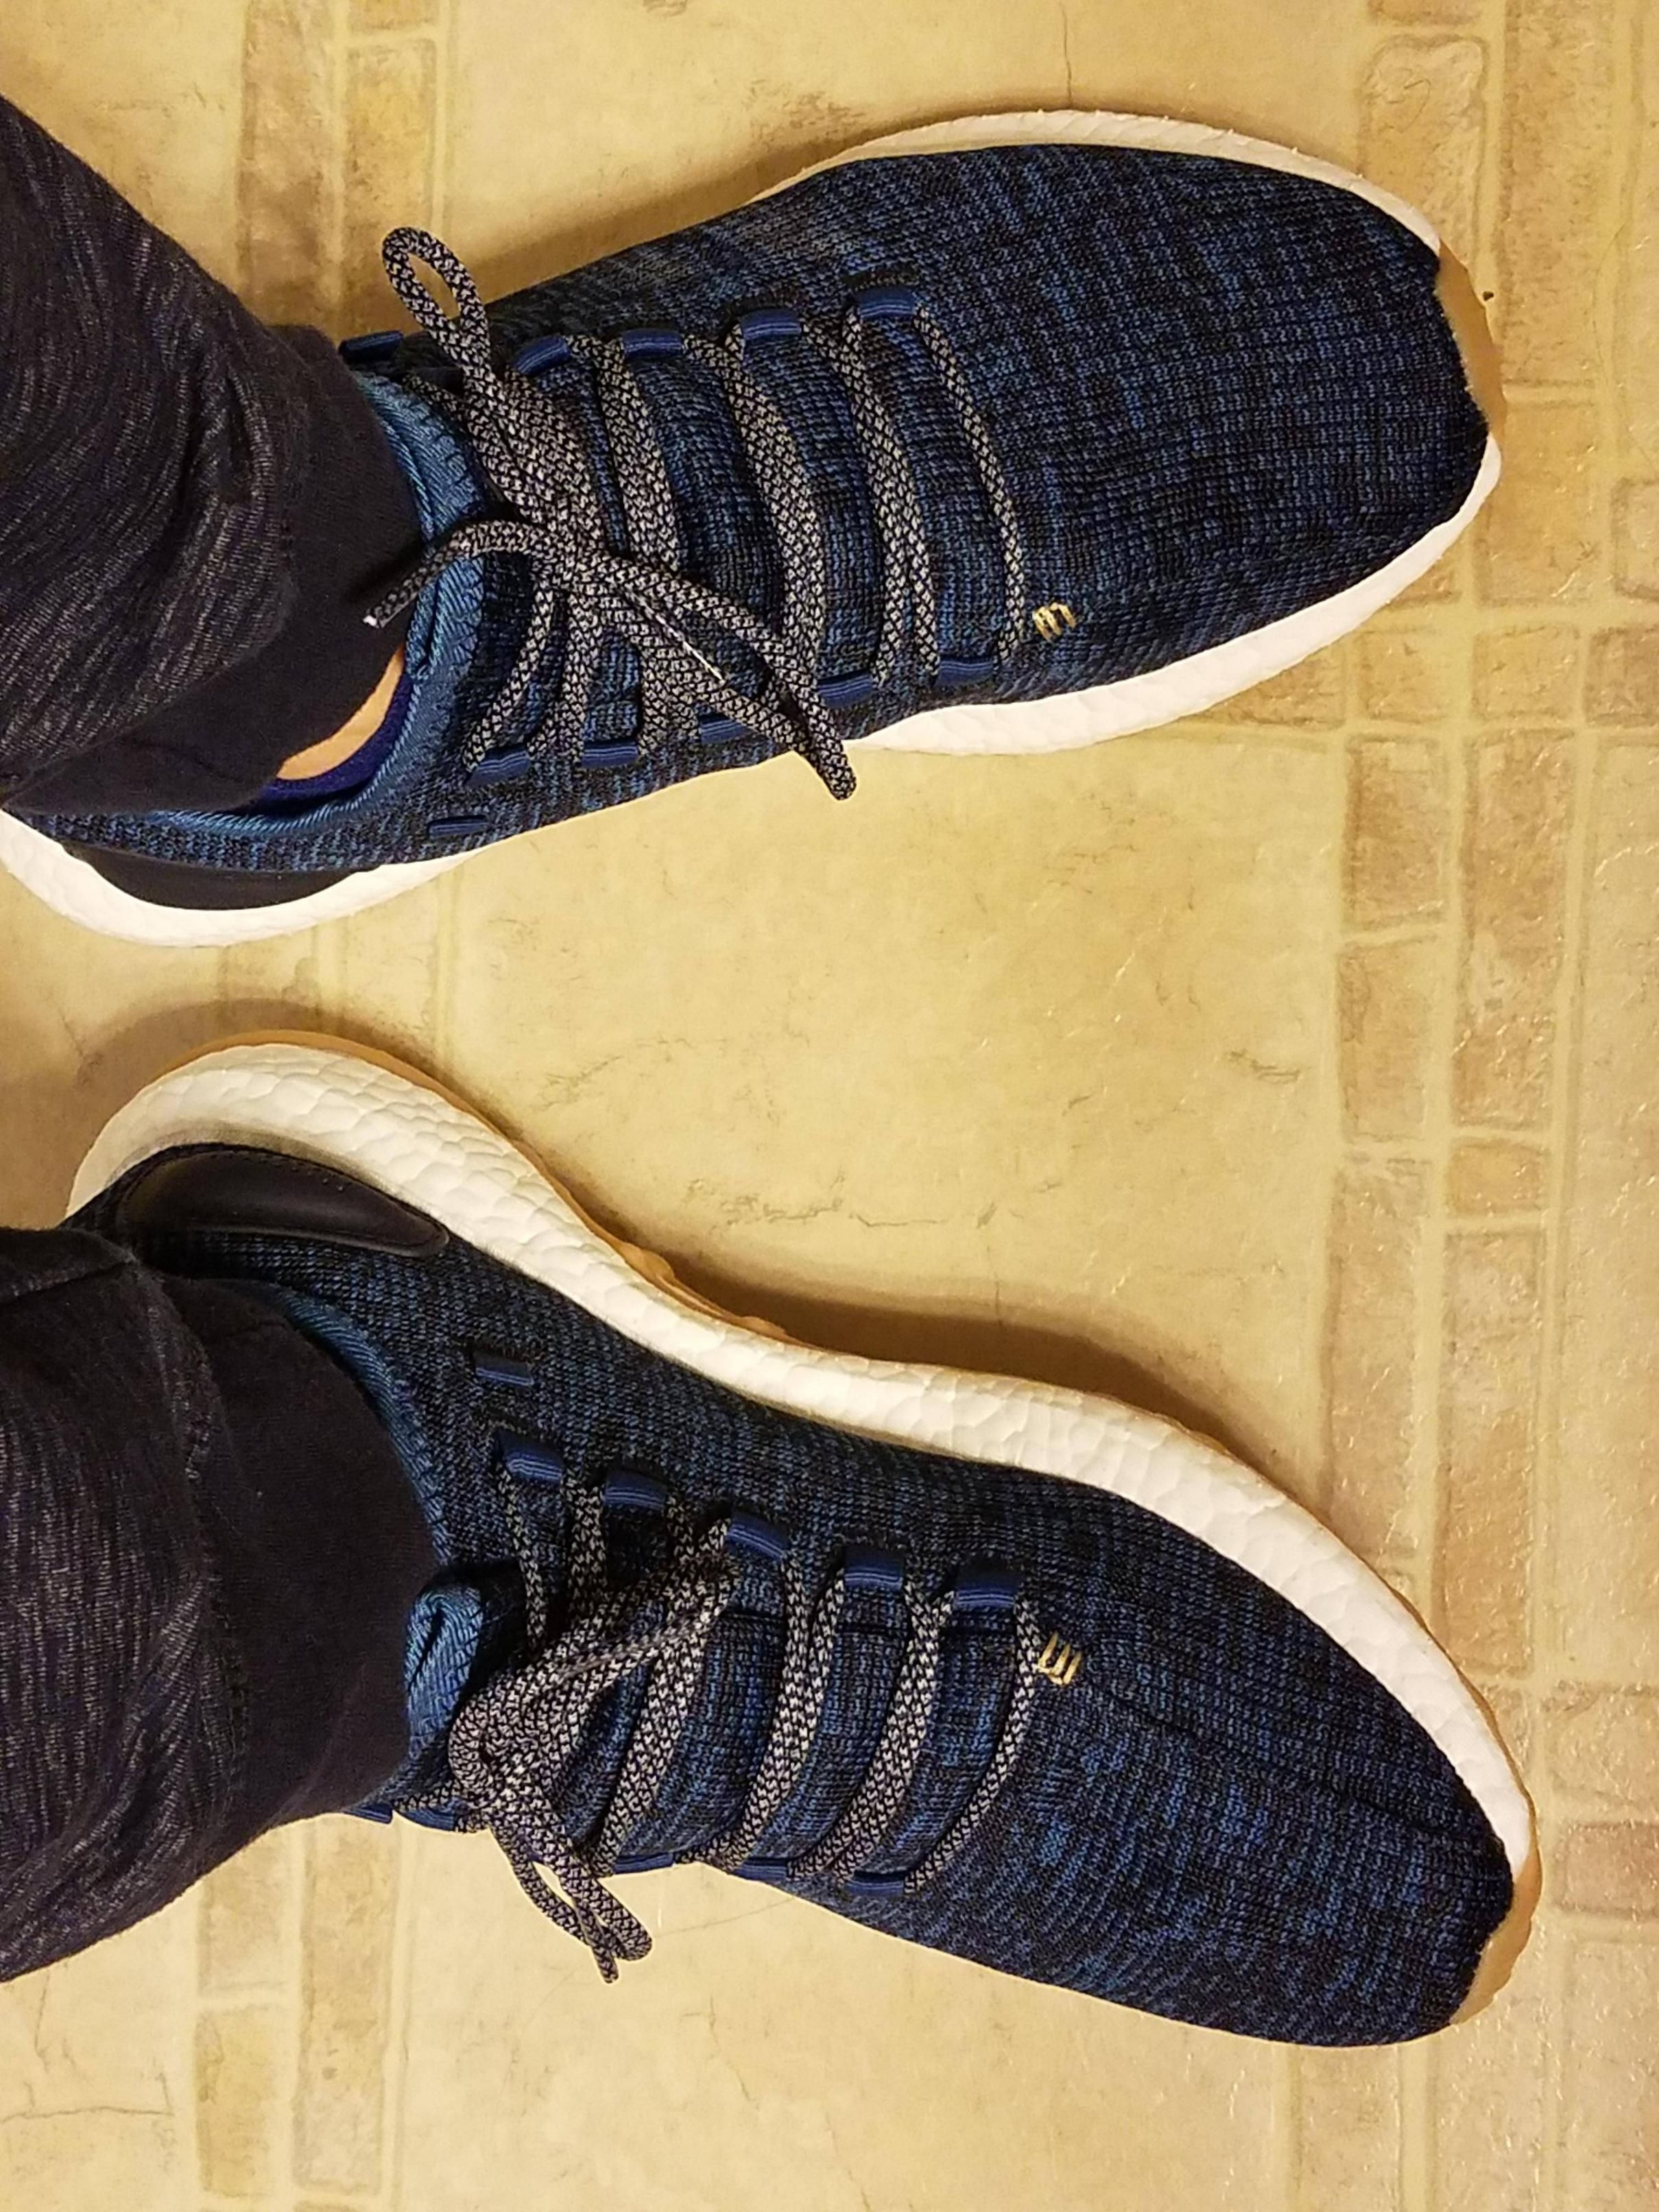 Pureboost Core Blue. Really like the laces they came with too.